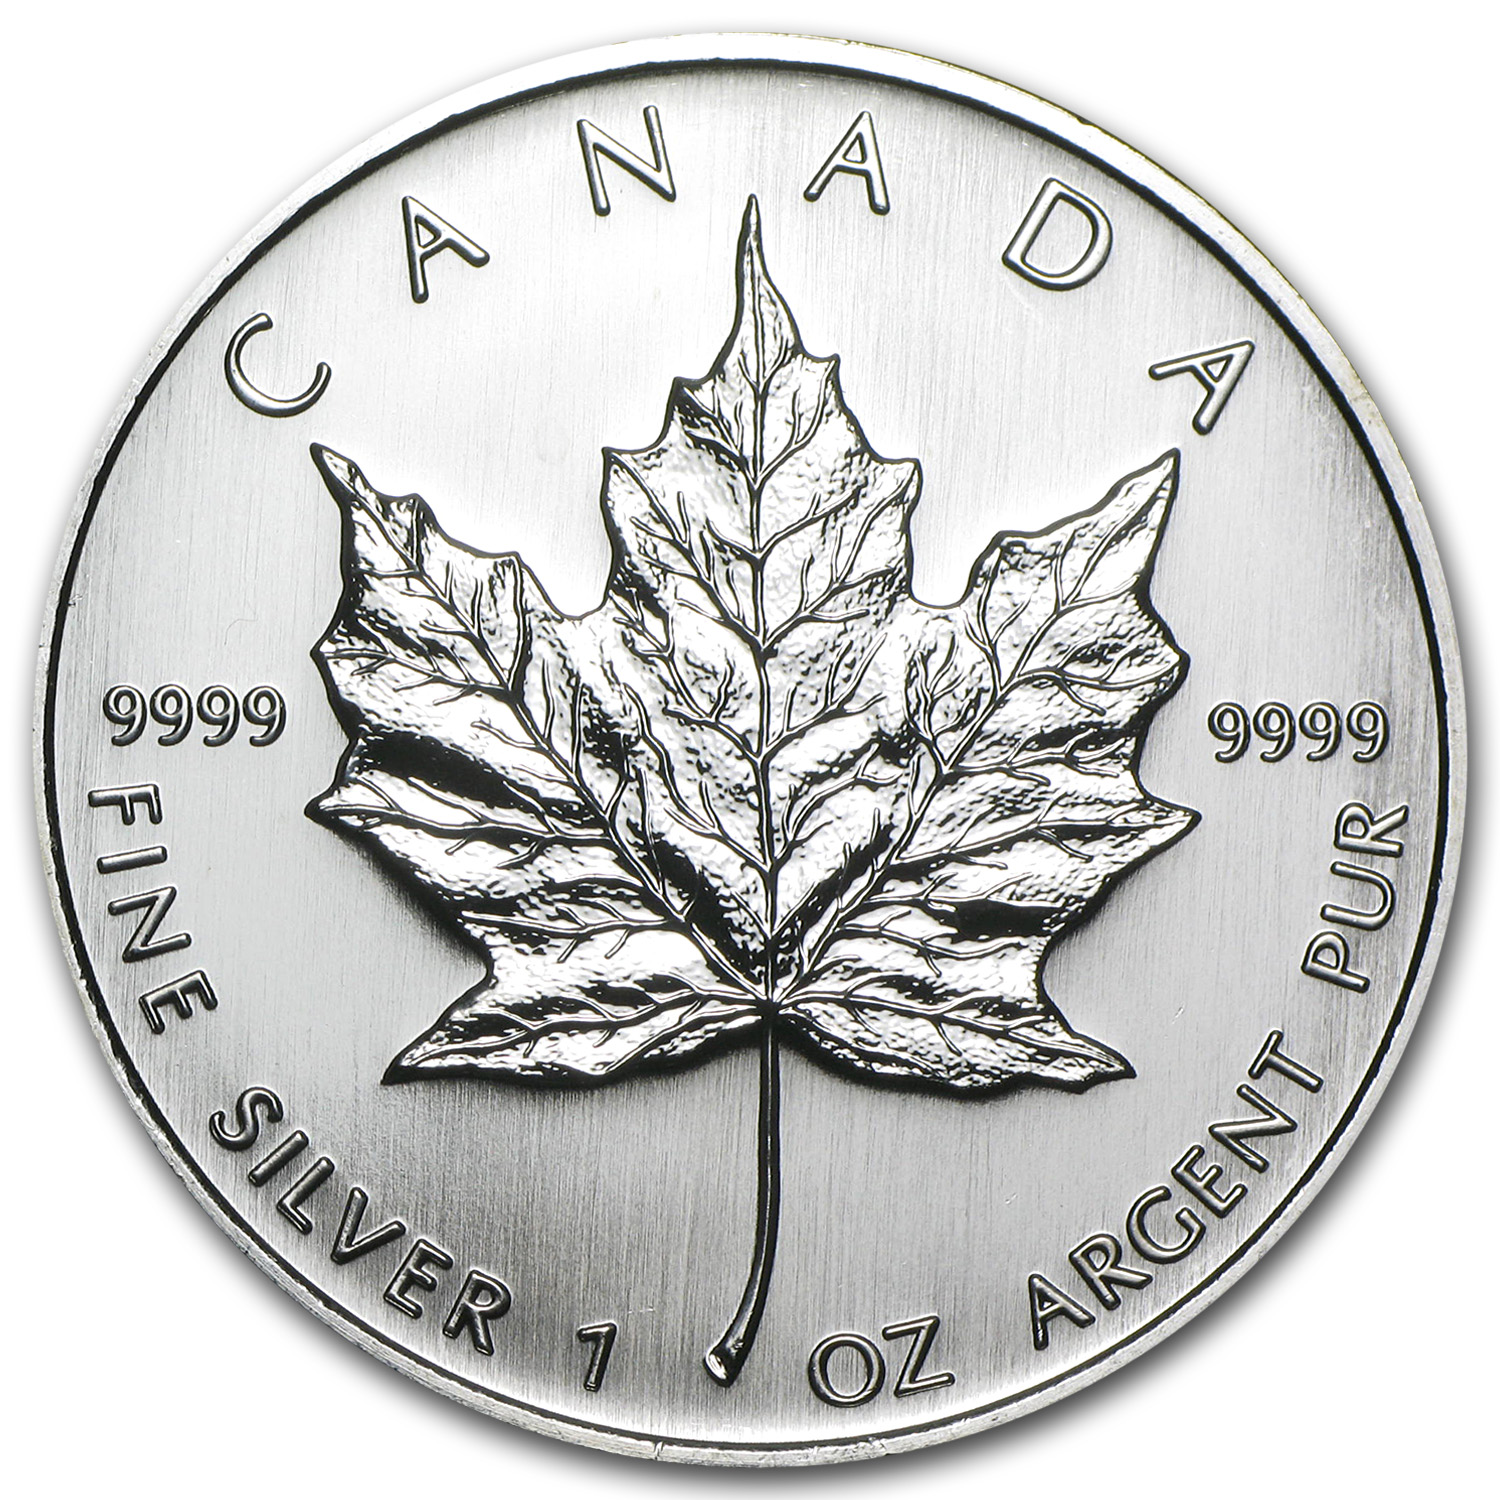 2007 1 oz Silver Canadian Maple Leaf BU